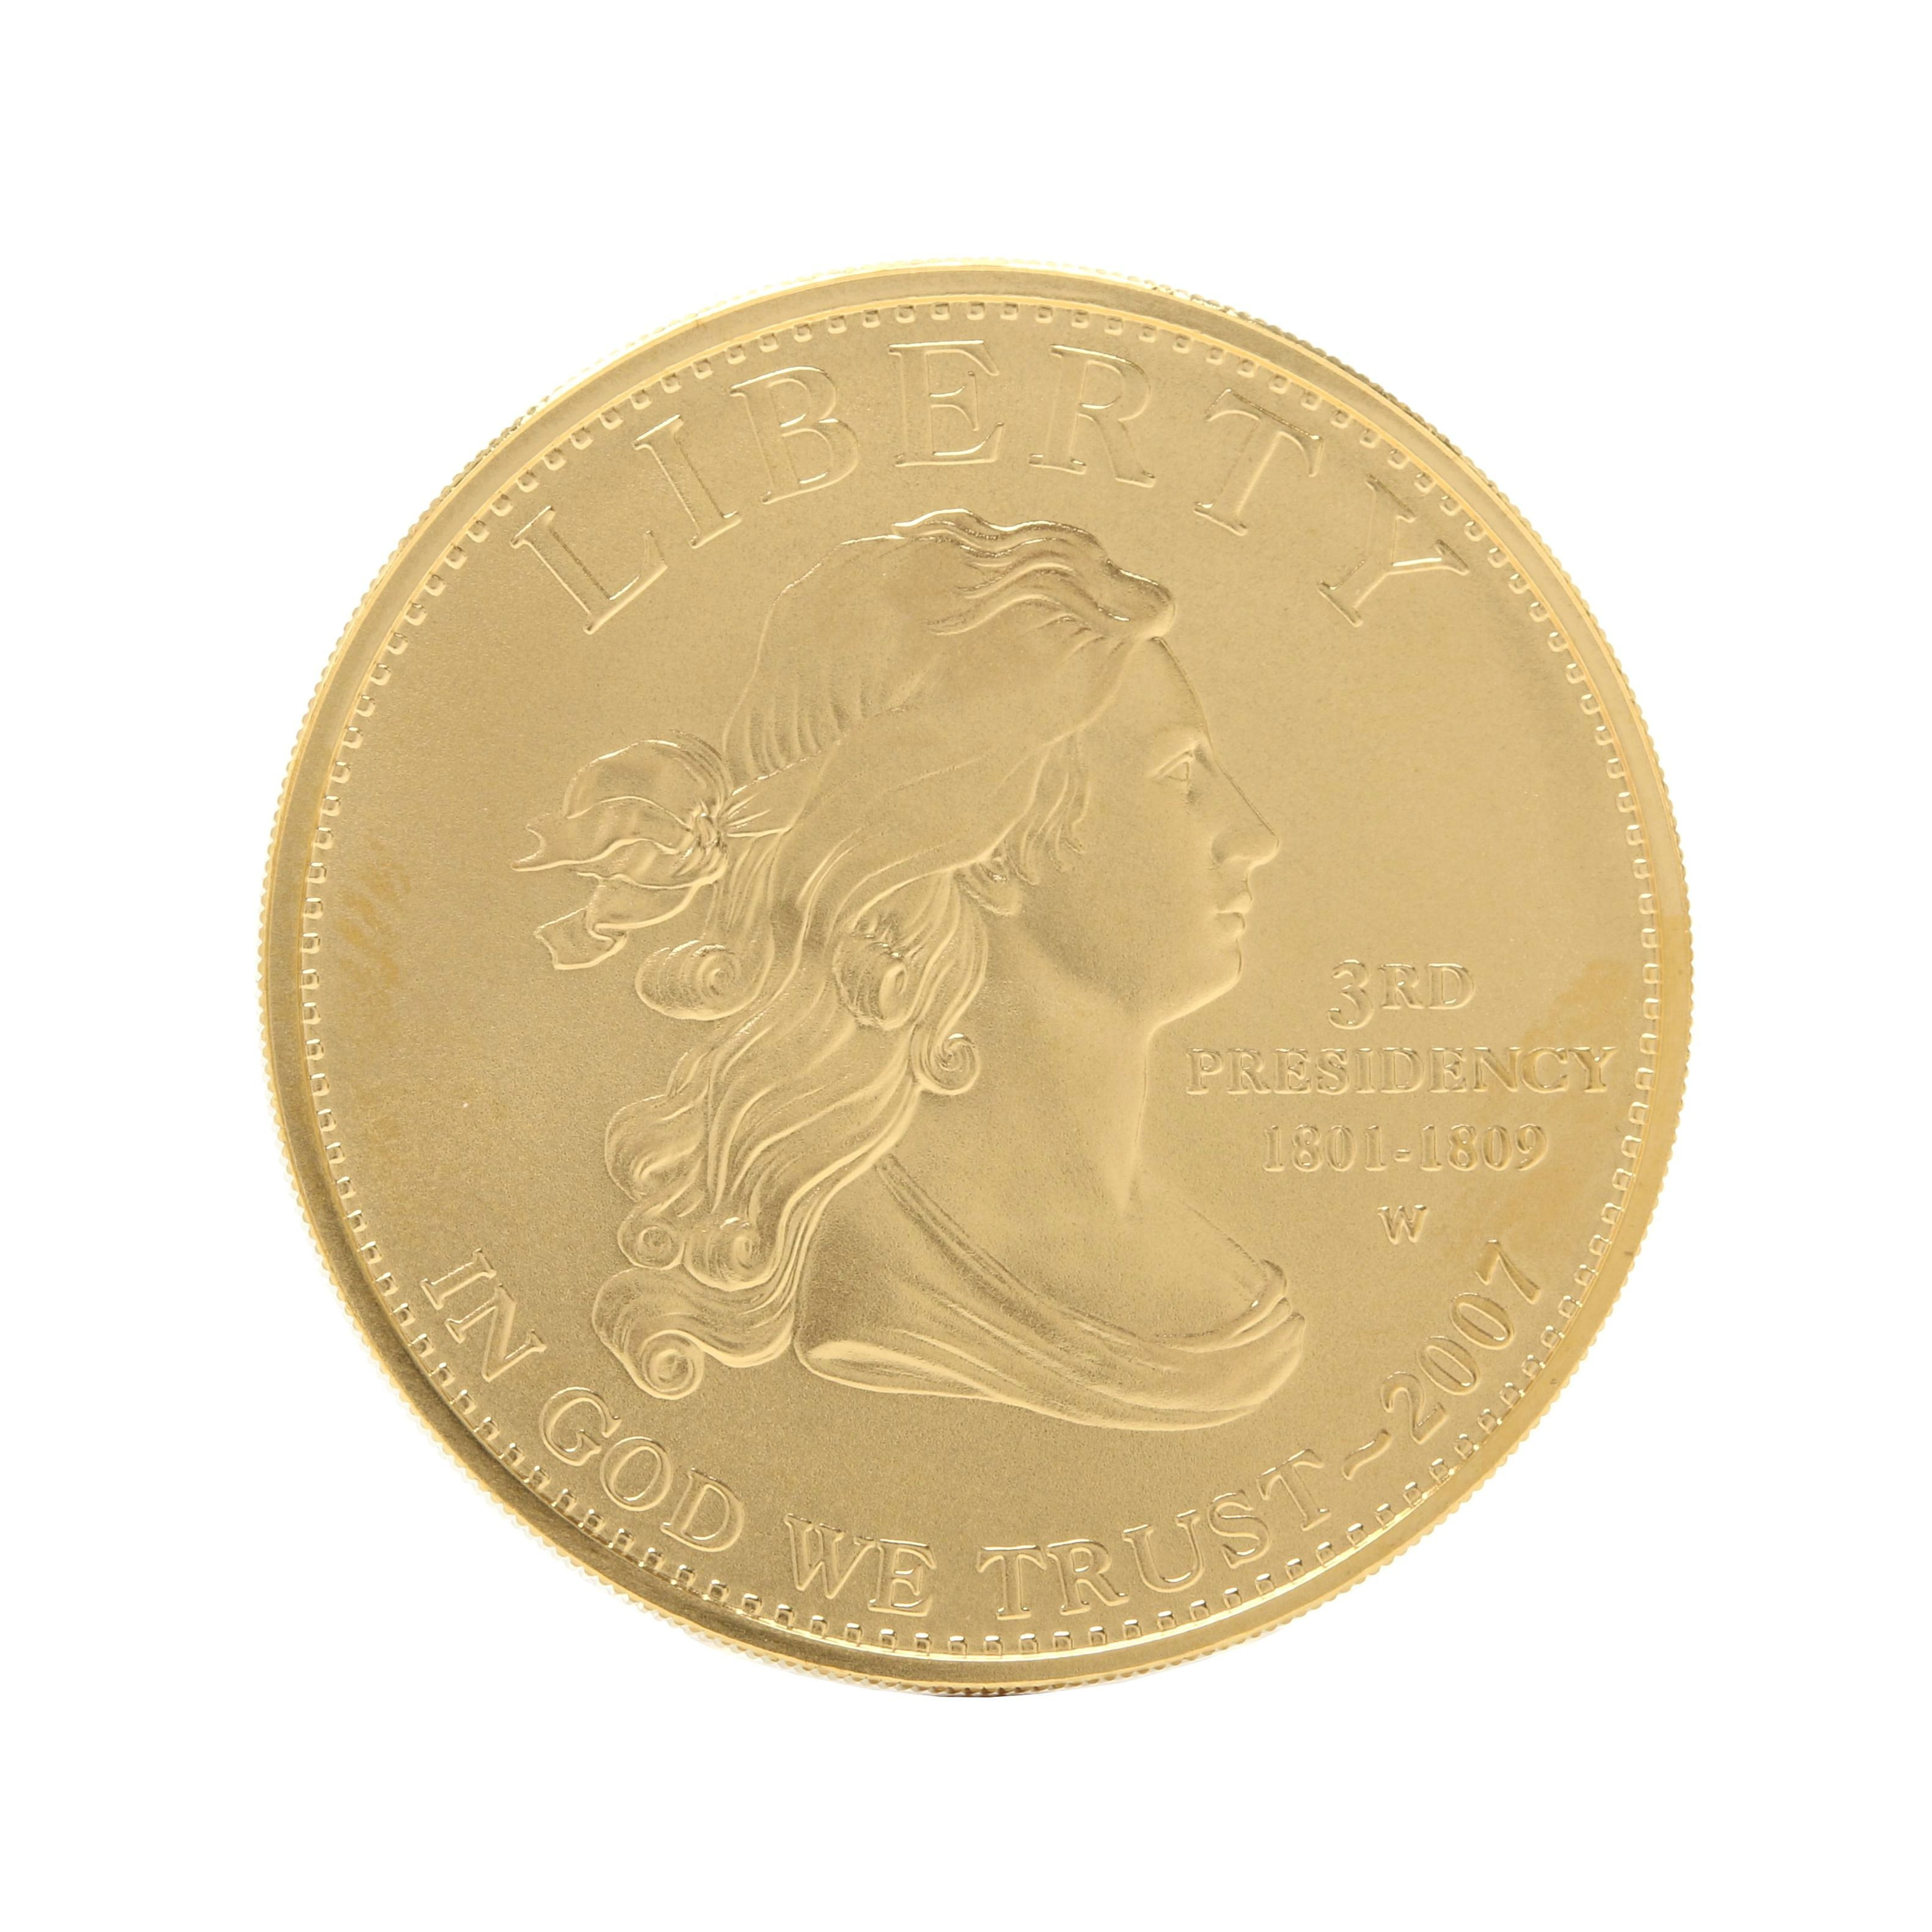 2007-W First Spouse Thomas Jefferson's Liberty $10 Gold Bullion Coin